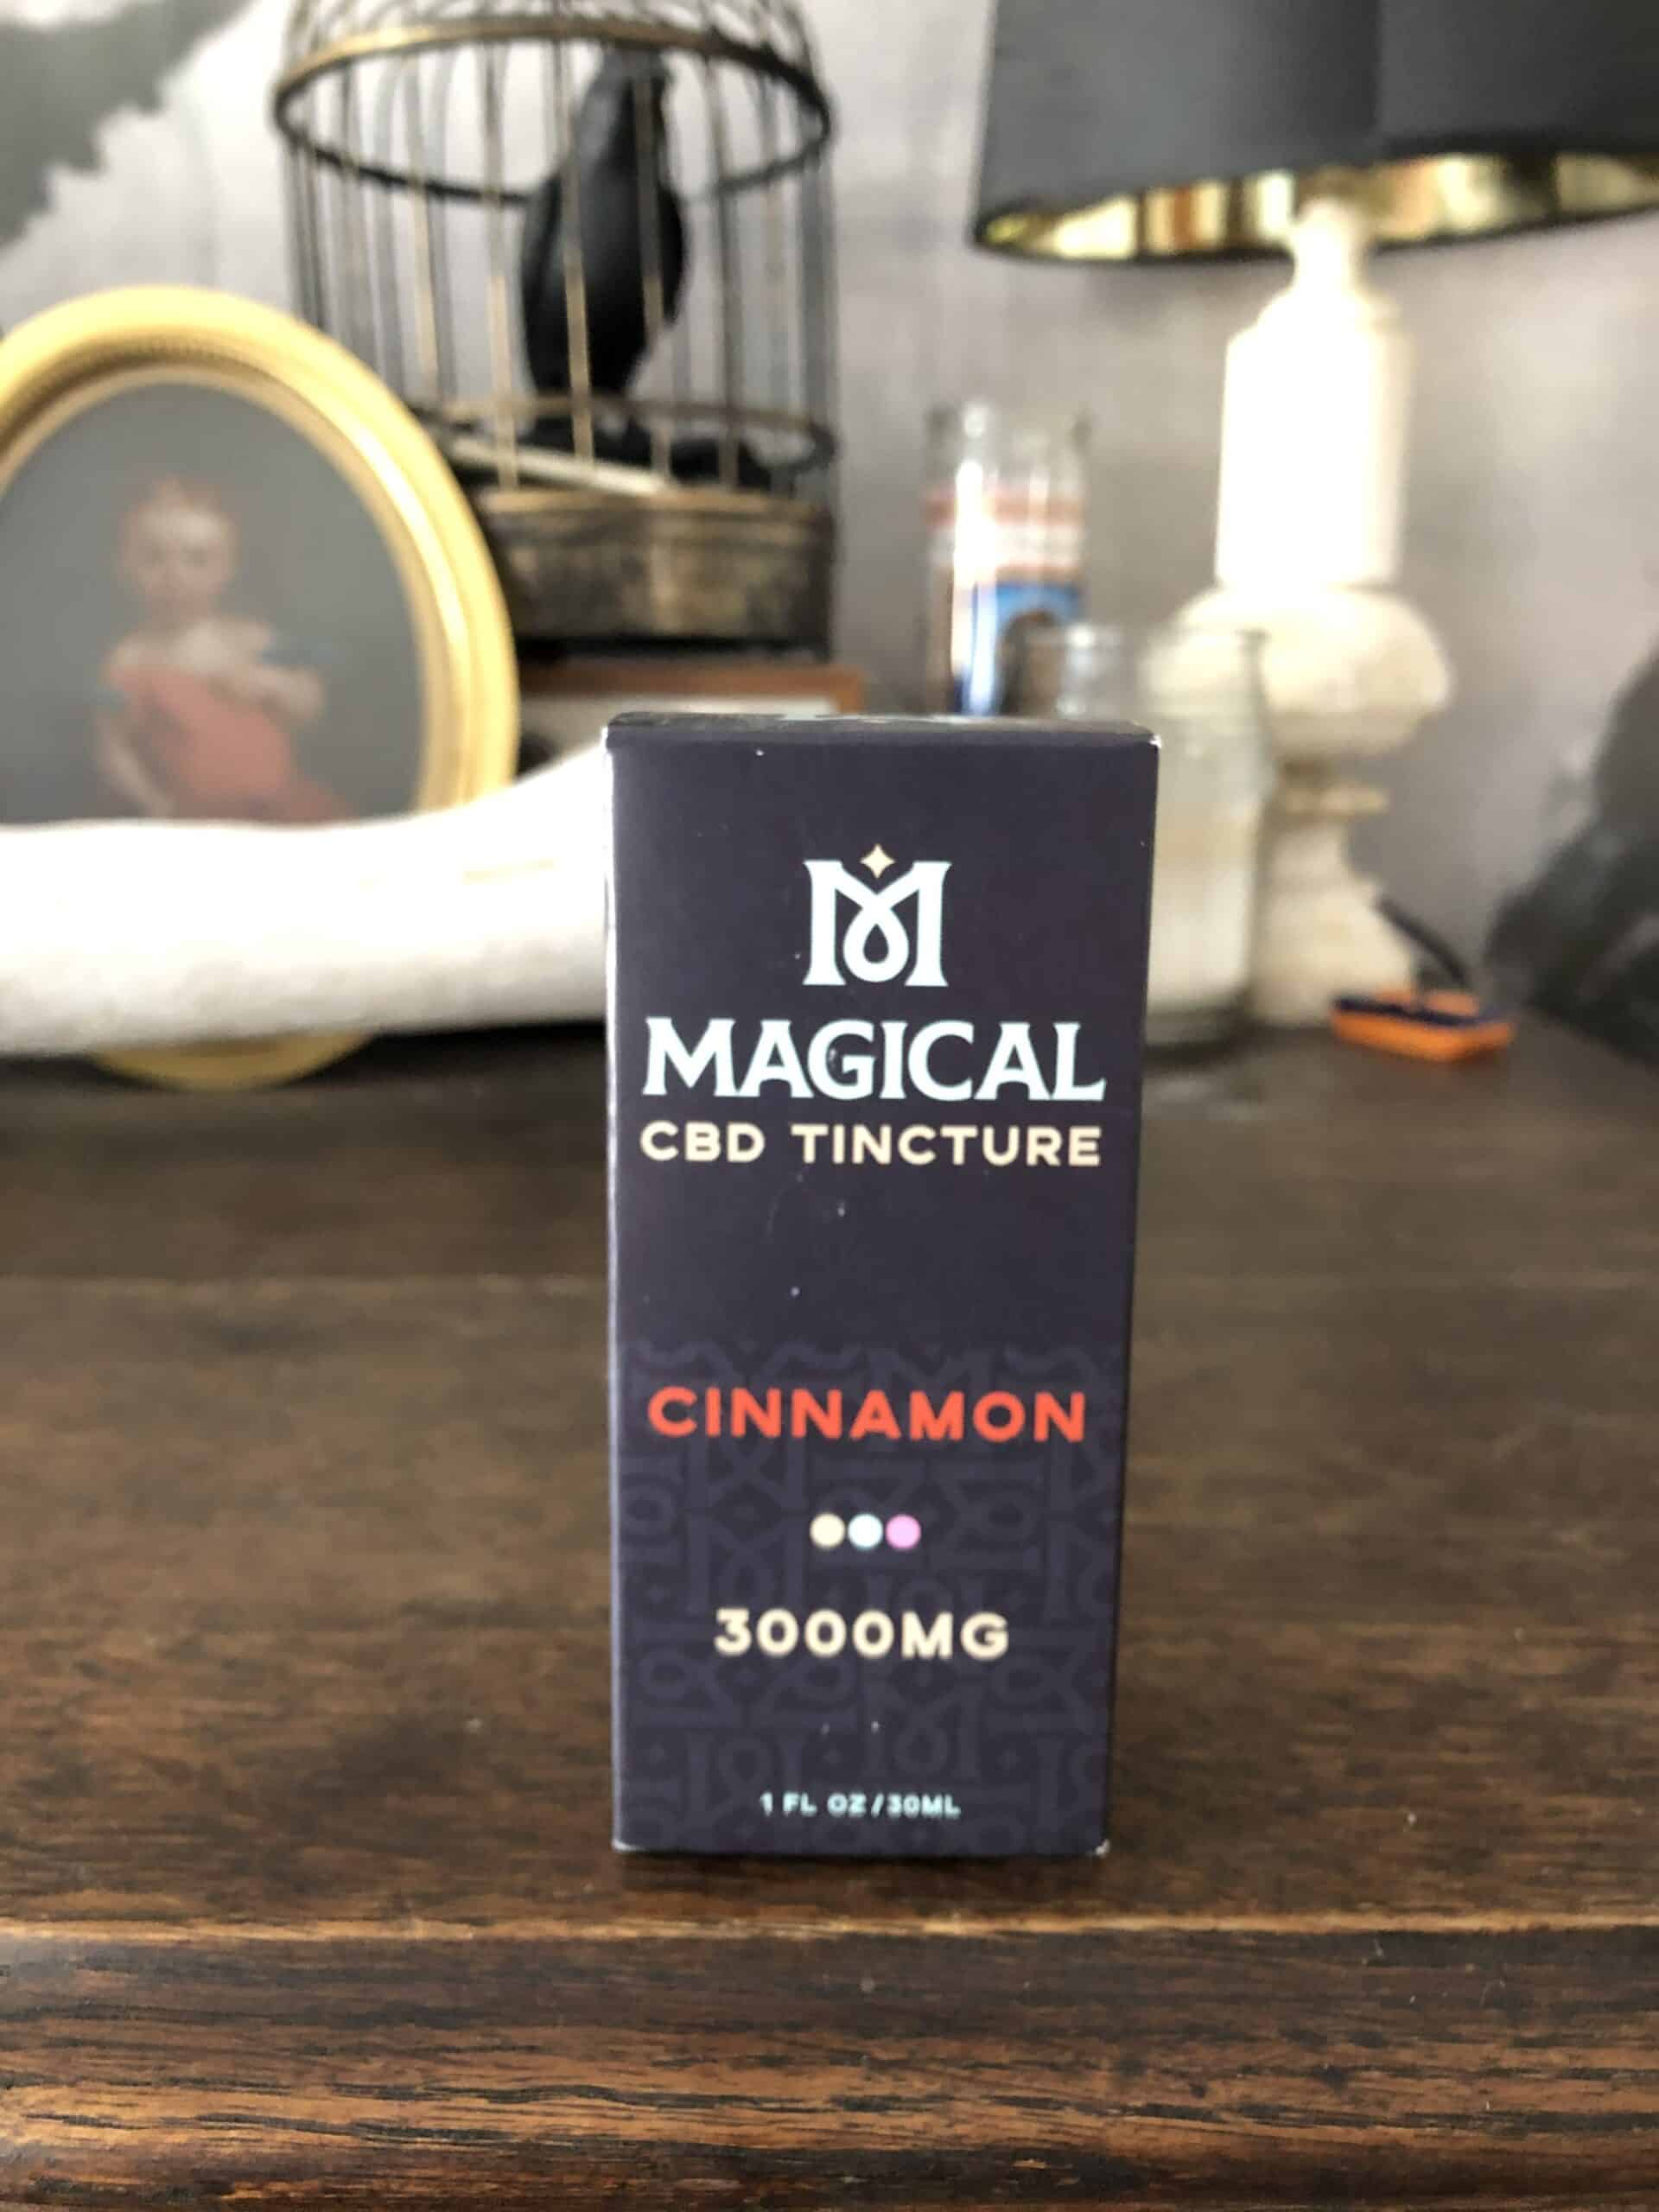 Magical CBD Cinnamon 3000 mg Tincture